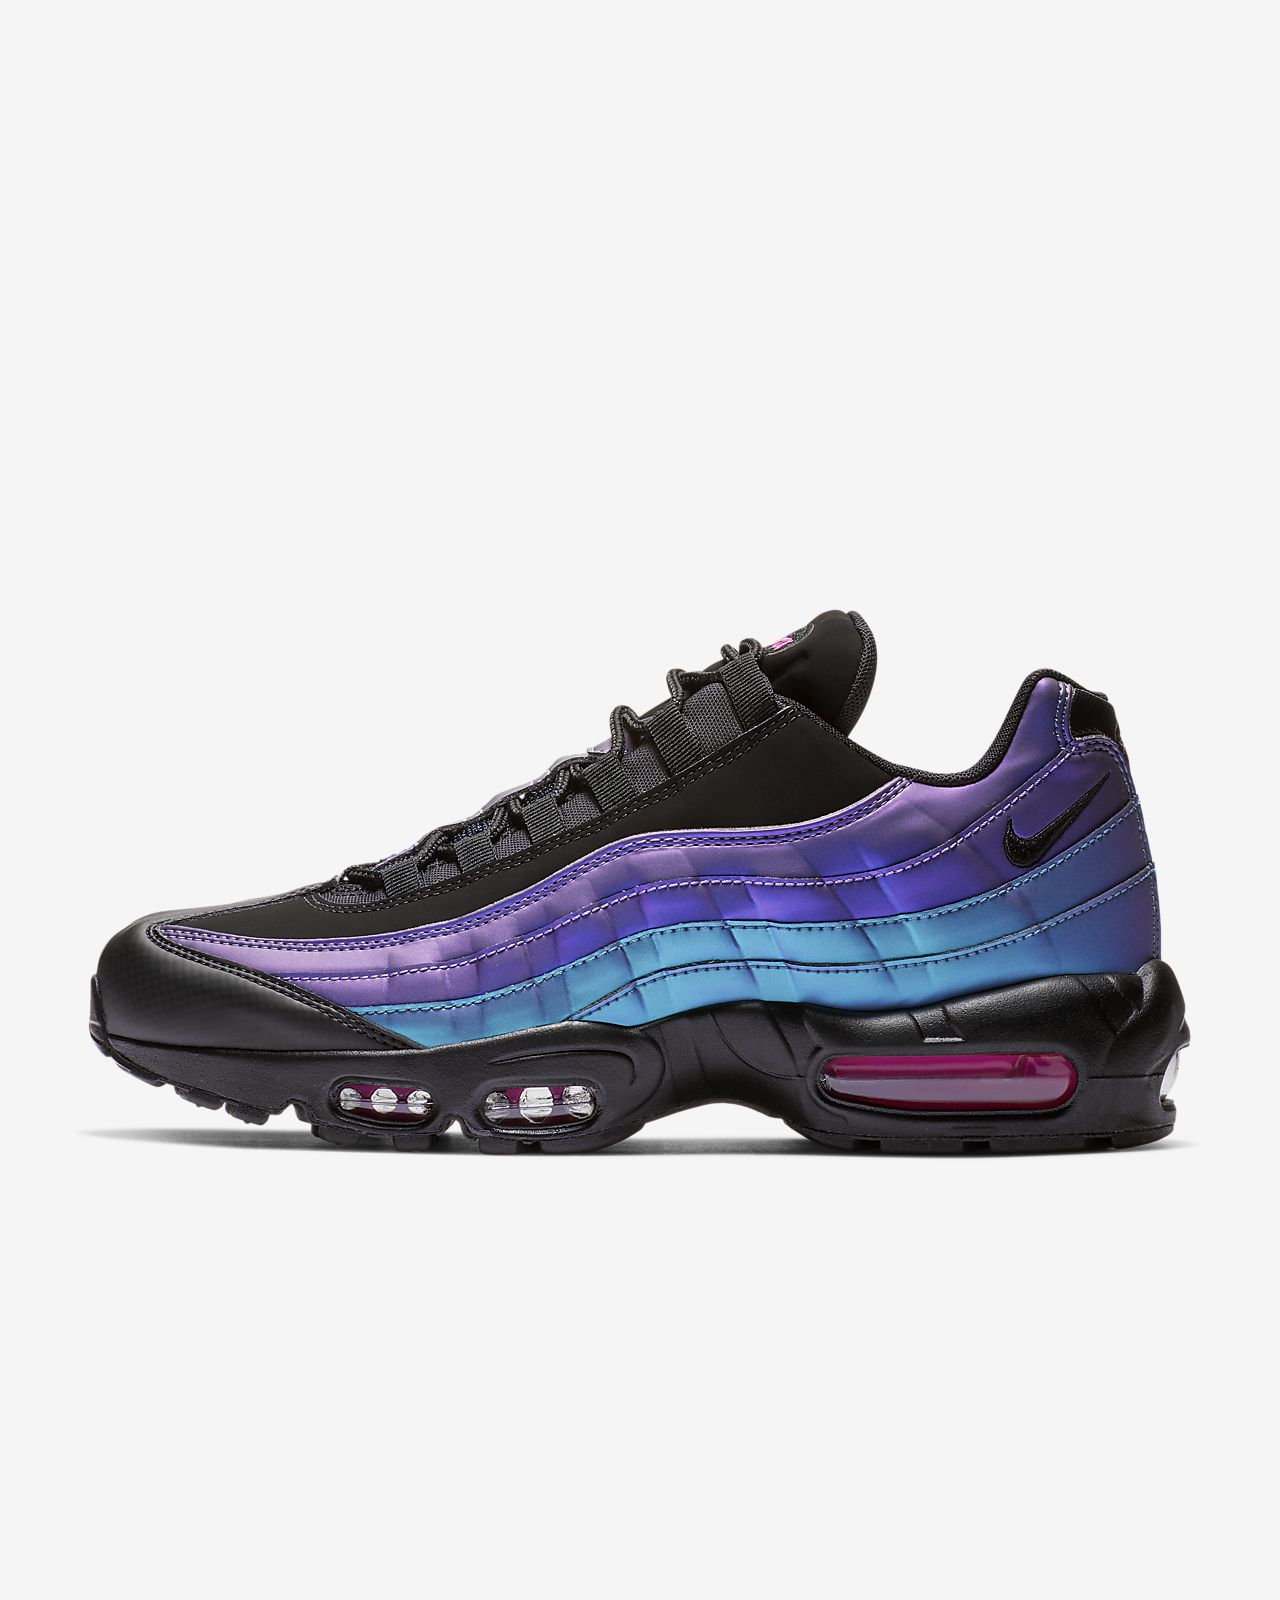 new style bc586 f2304 ... Chaussure Nike Air Max 95 Premium pour Homme